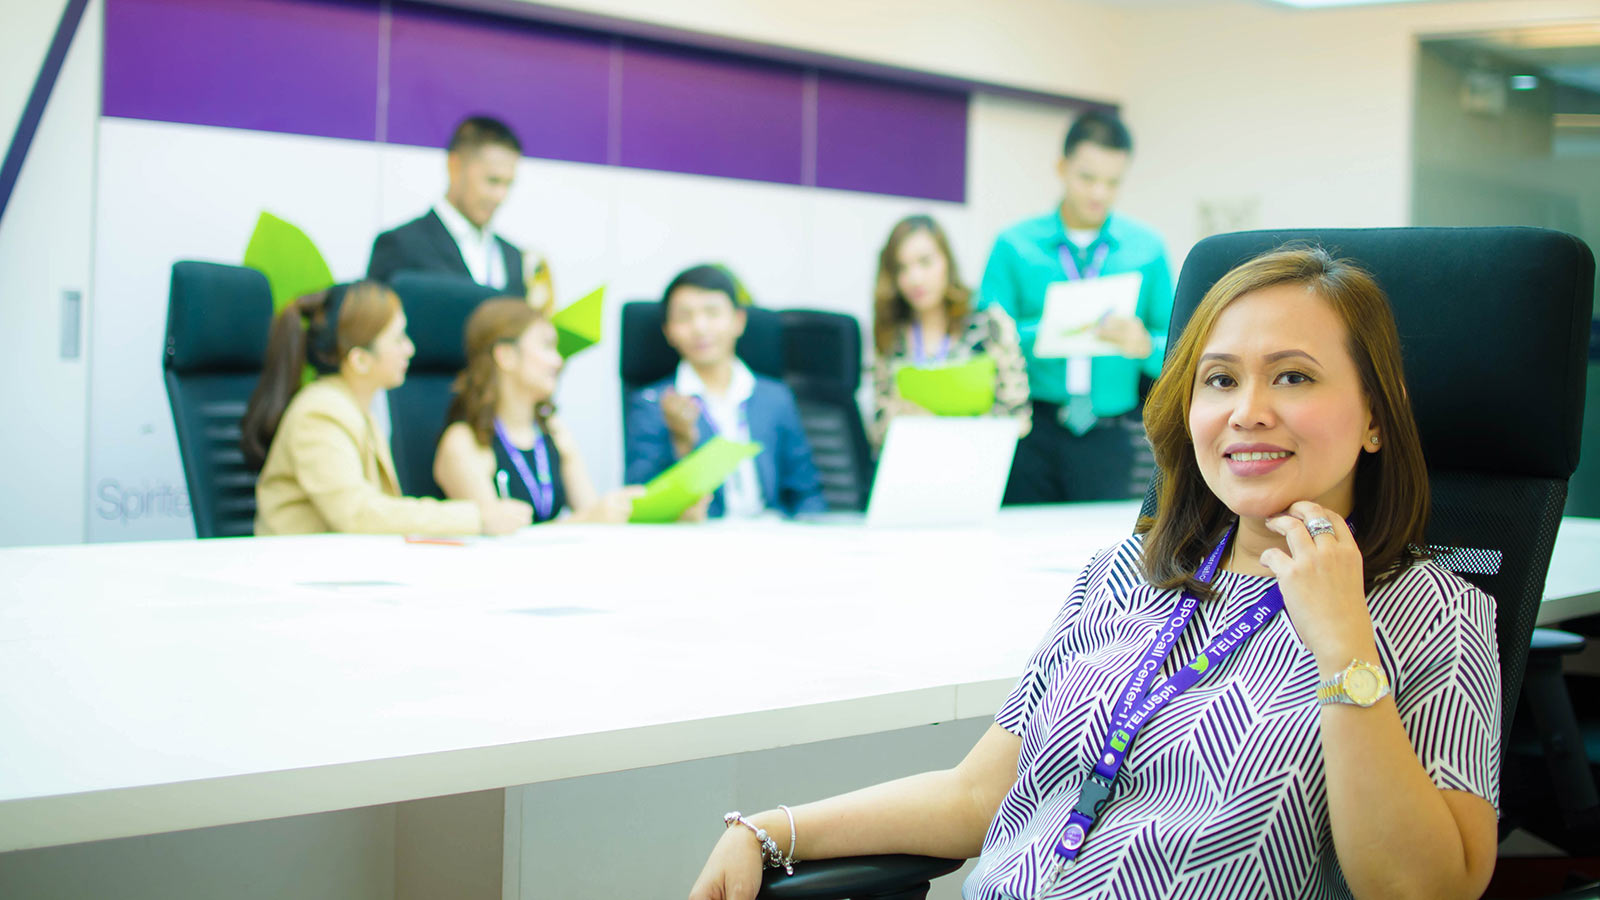 Woman sitting a meeting room desk with her team members in the background